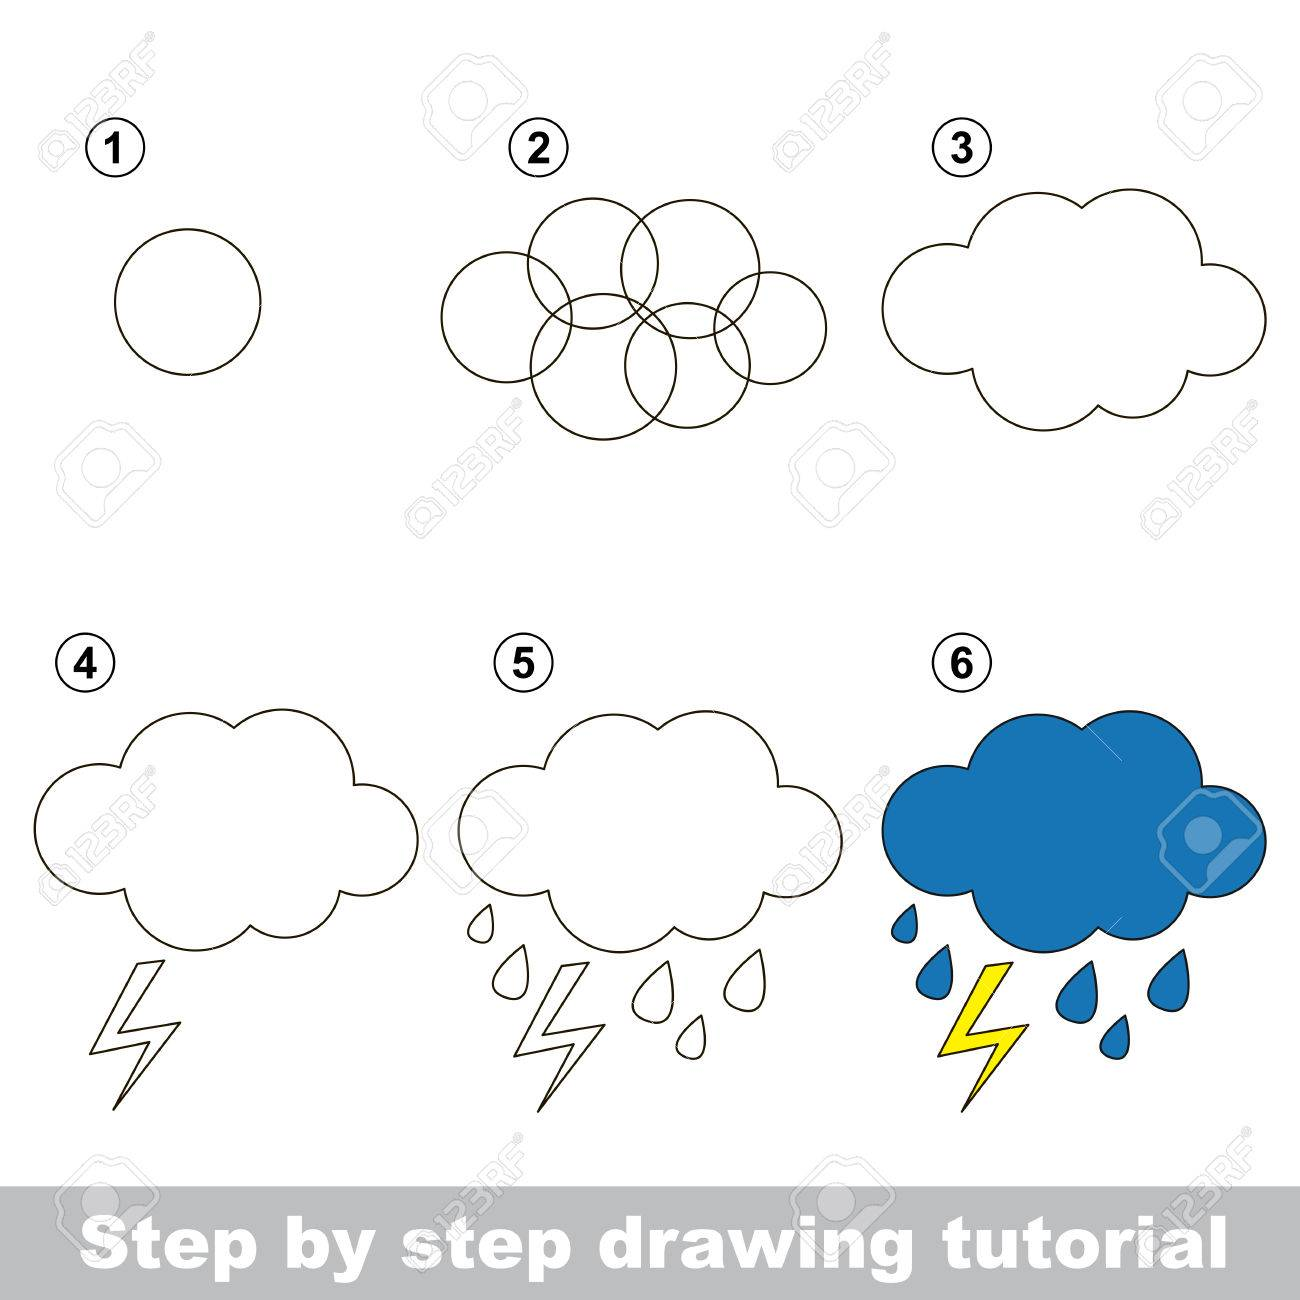 Drawing Tutorial For Children How To Draw The Rain